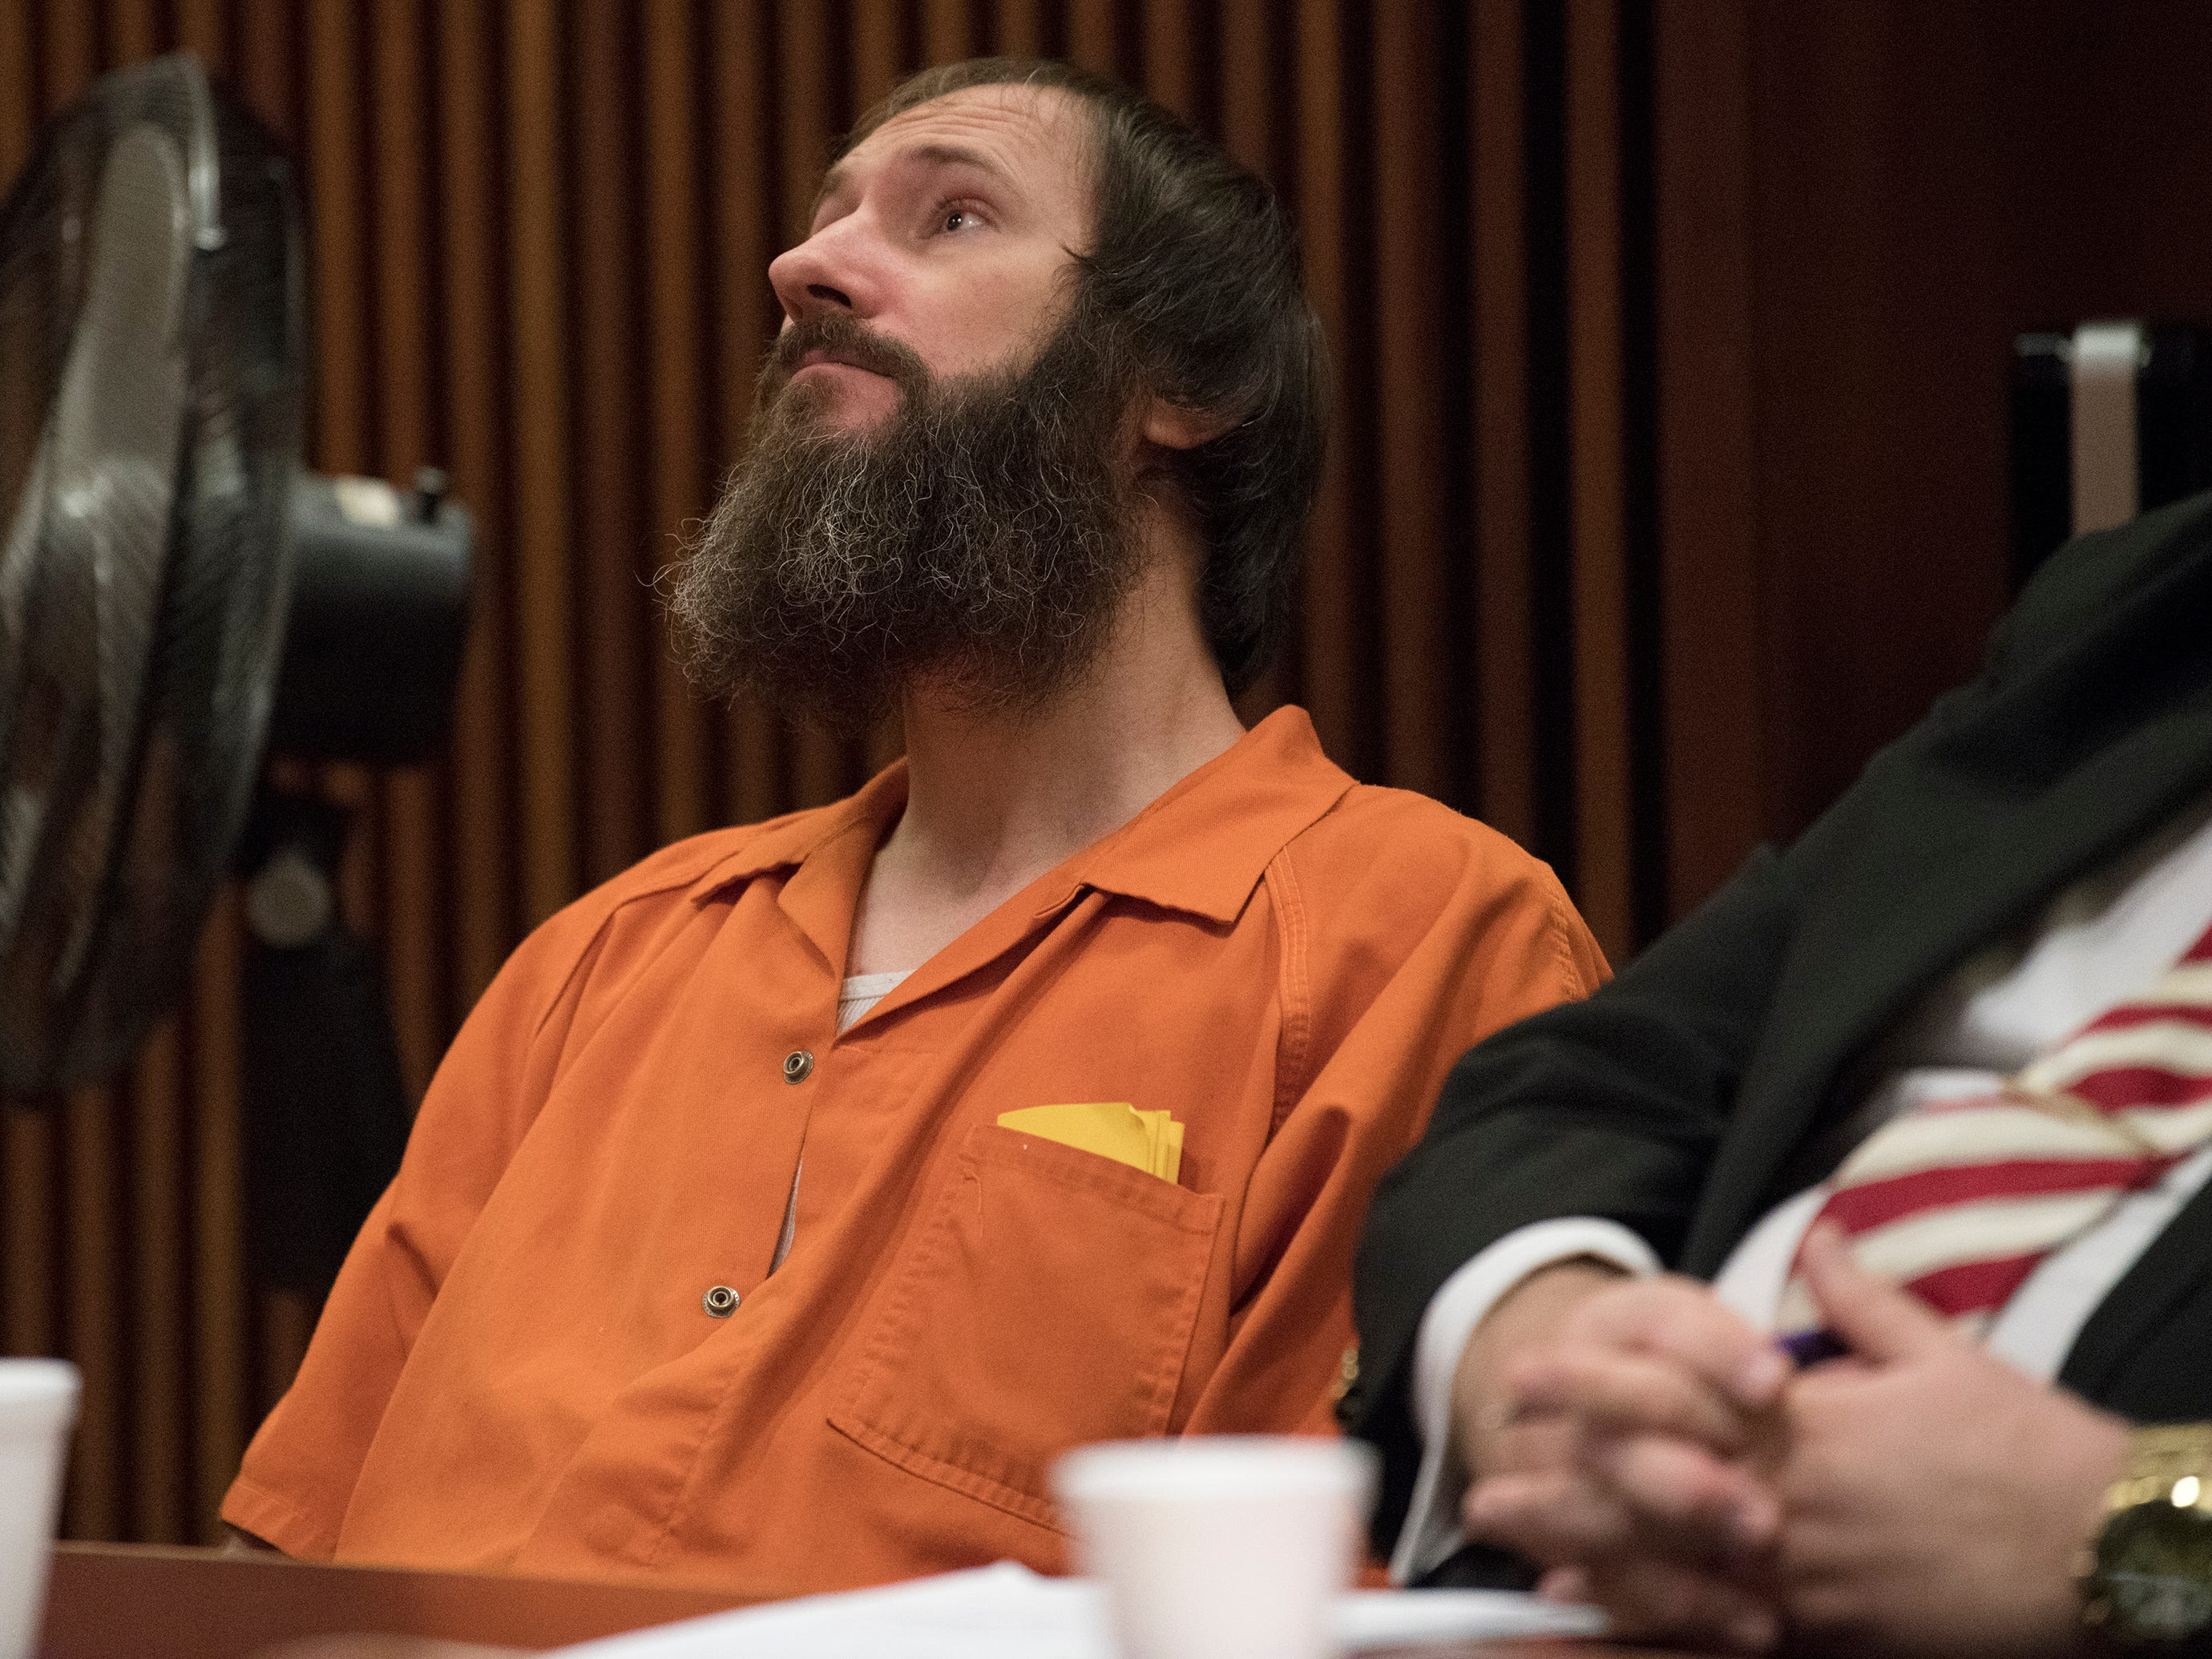 Johnny Bobbitt Jr. appears in a Burlington County Superior Court courtroom to be sentenced on the charge of conspiracy to commit theft by deception on Friday, April 12, 2019.  Bobbitt received a 5-year Drug Court probationary term, including long-term in-patient treatment, for his role in a GoFundMe scam.